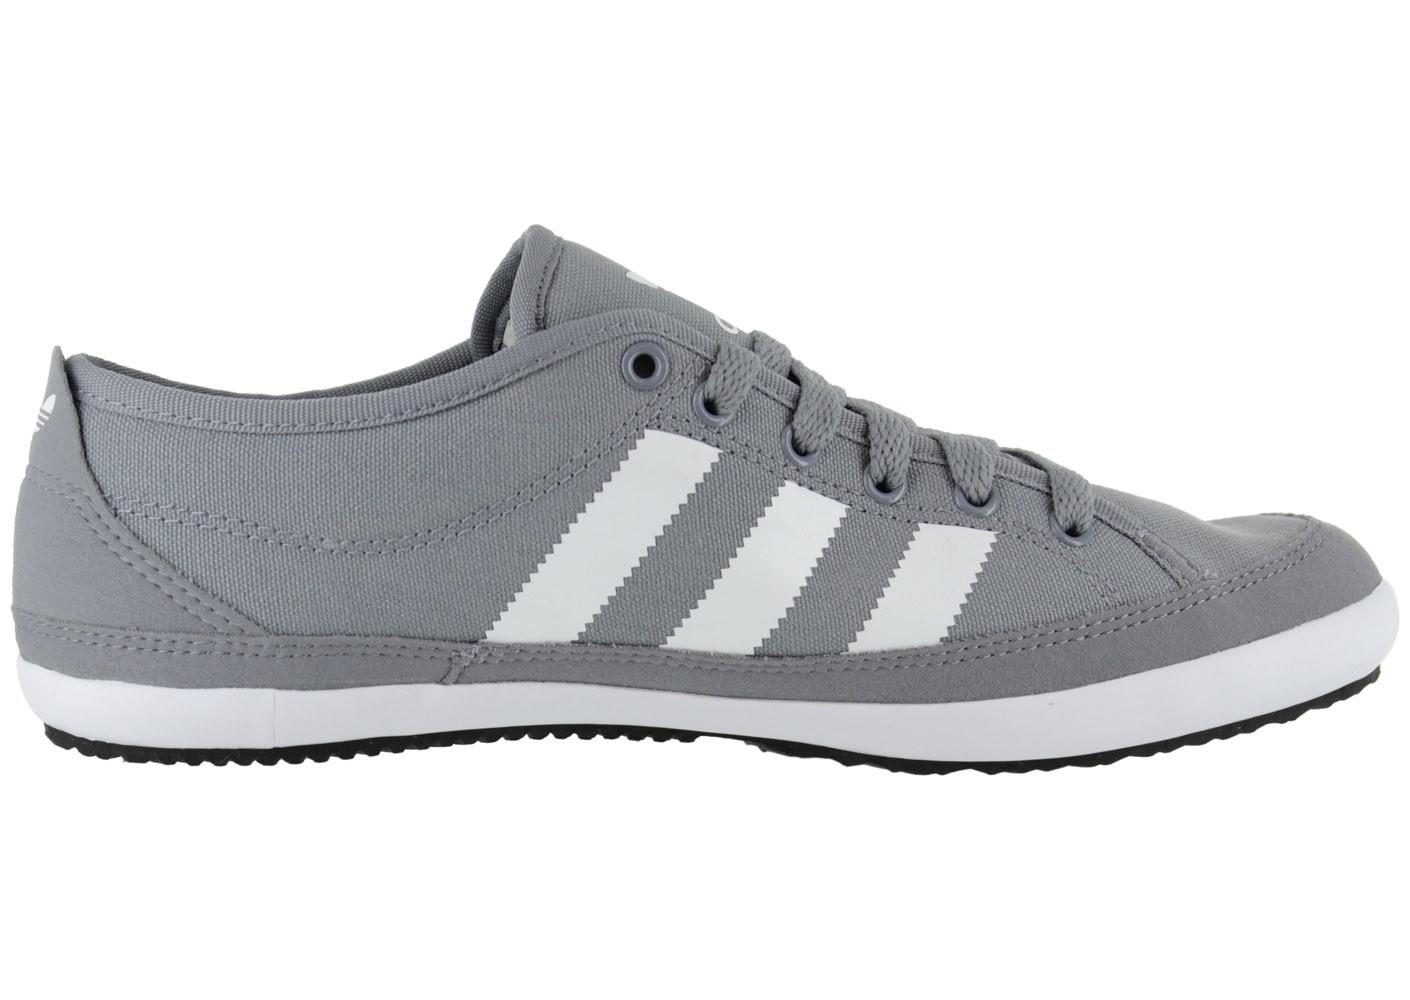 comment chausse les chaussures adidas